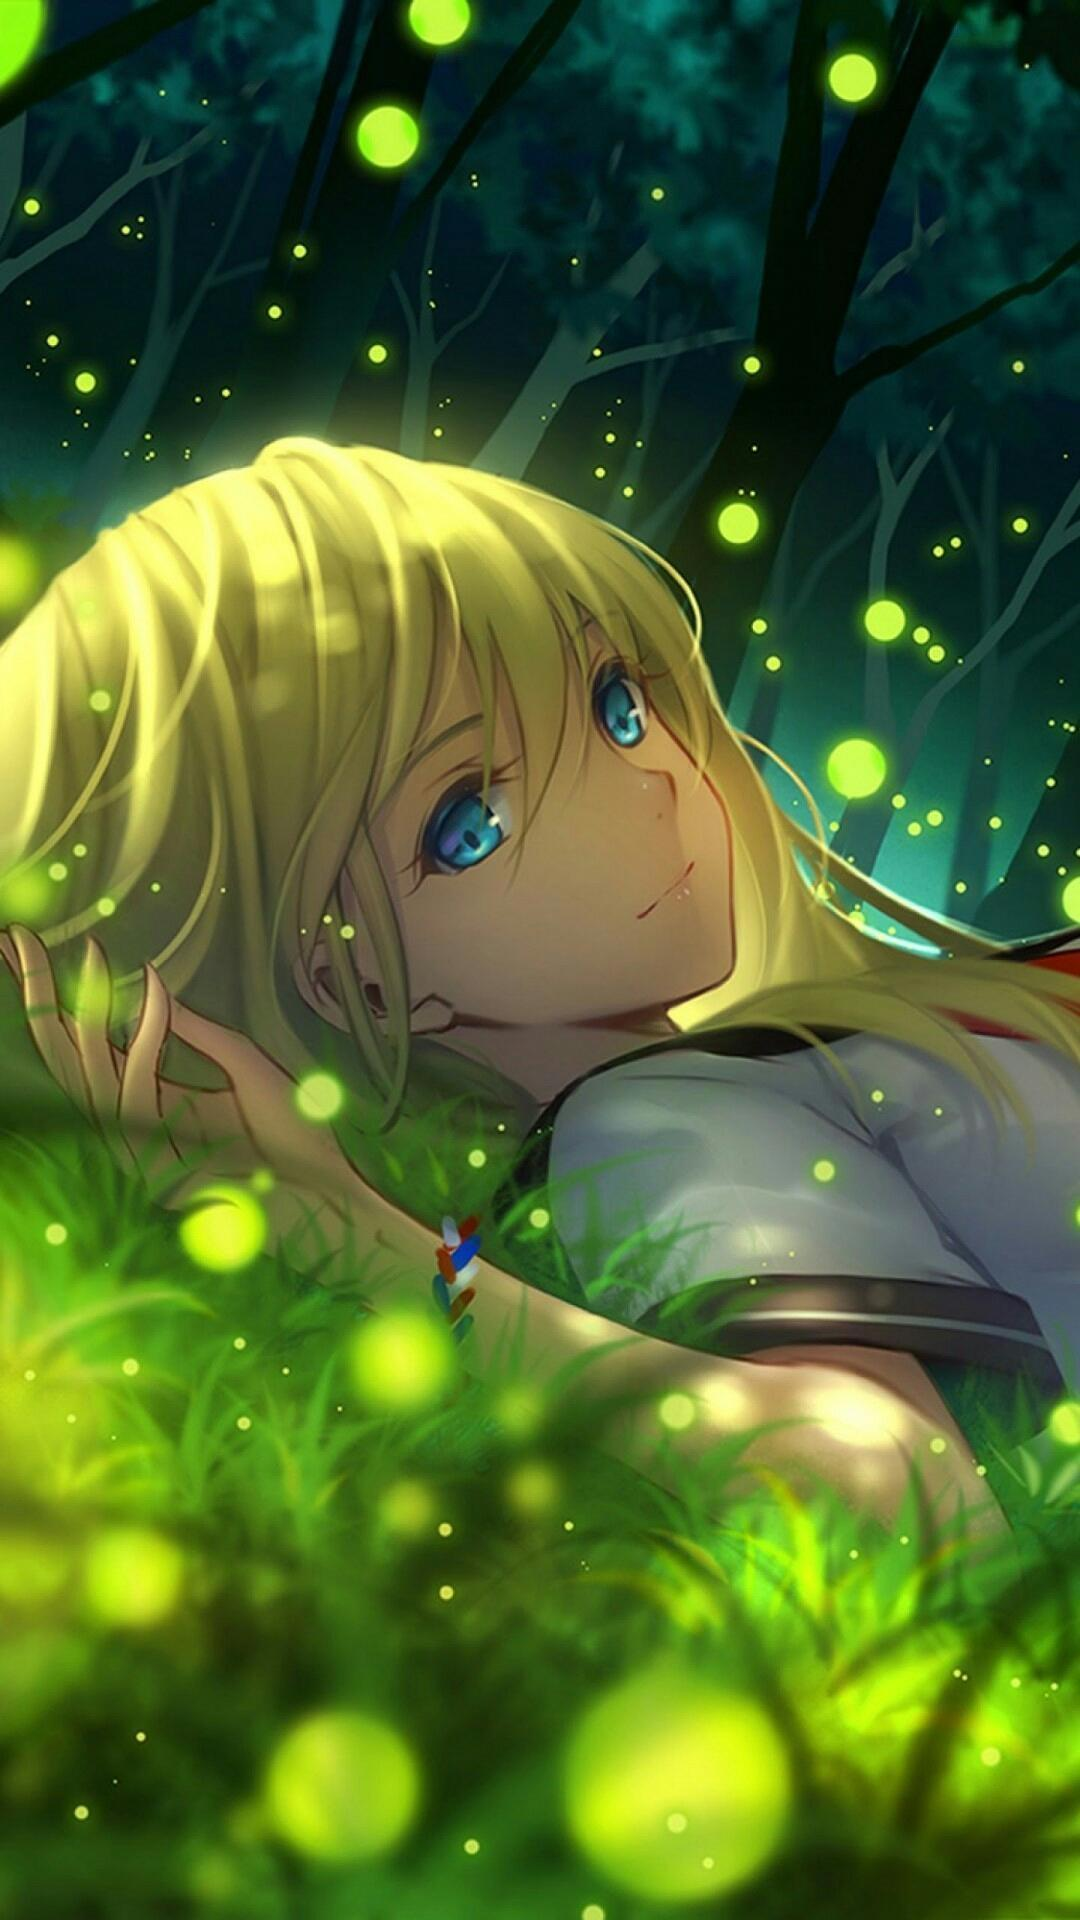 4k Amoled Anime Wallpaper For Android Apk Download